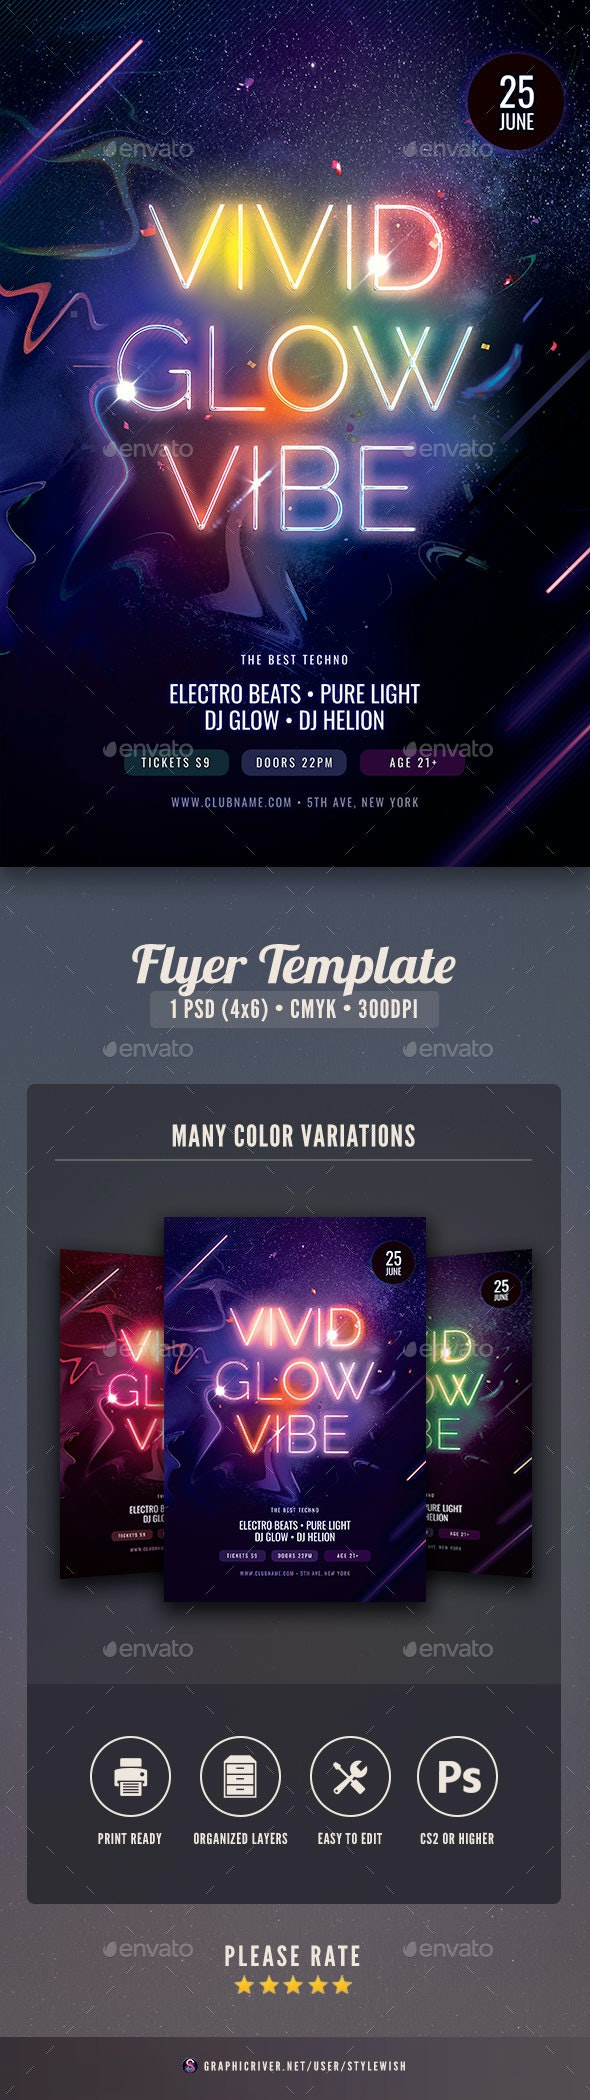 Vivid Glow Vibe Flyer - Clubs & Parties Events